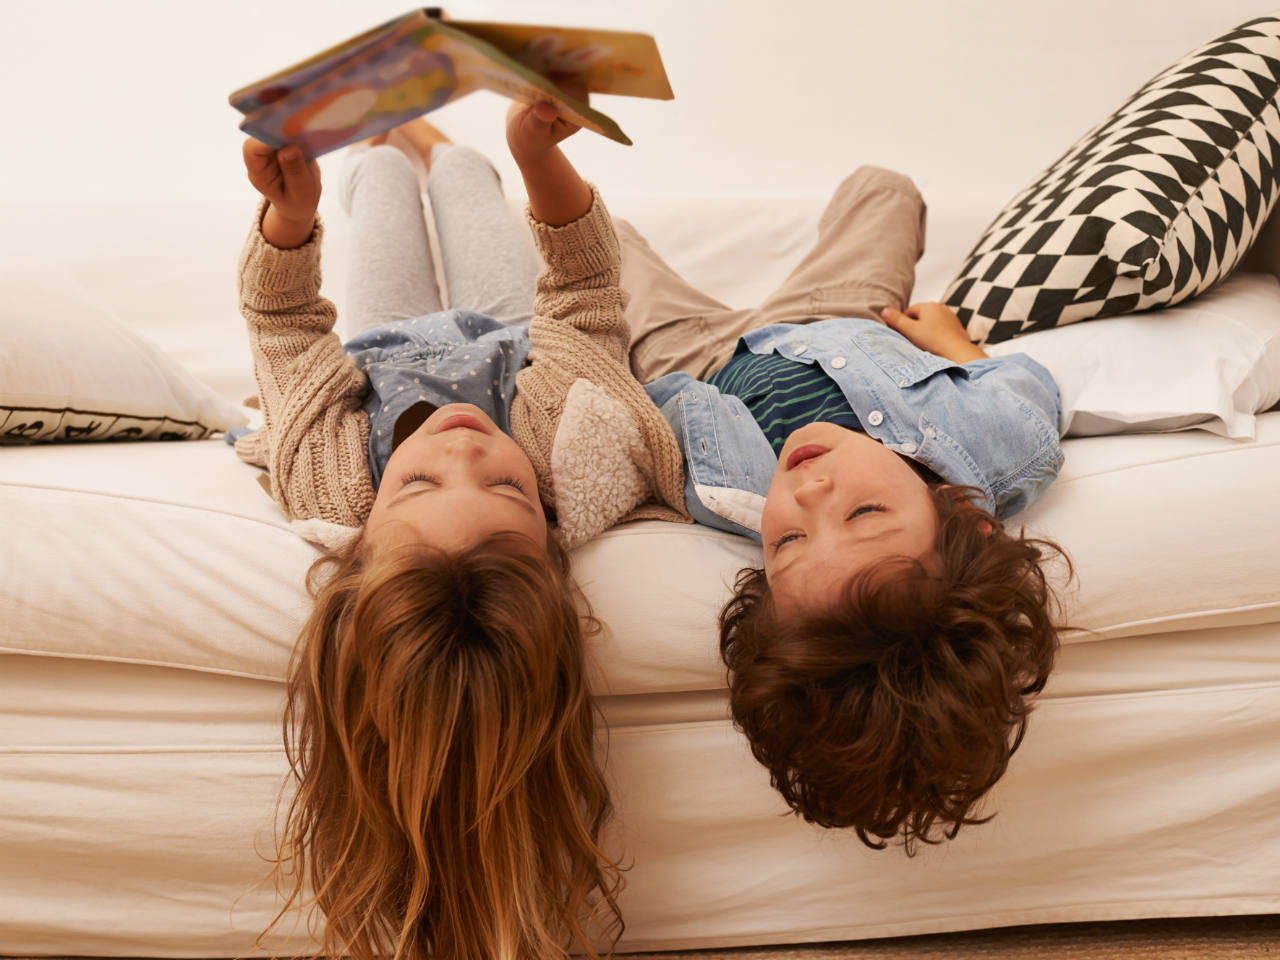 Two kids sitting upside down on the couch reading